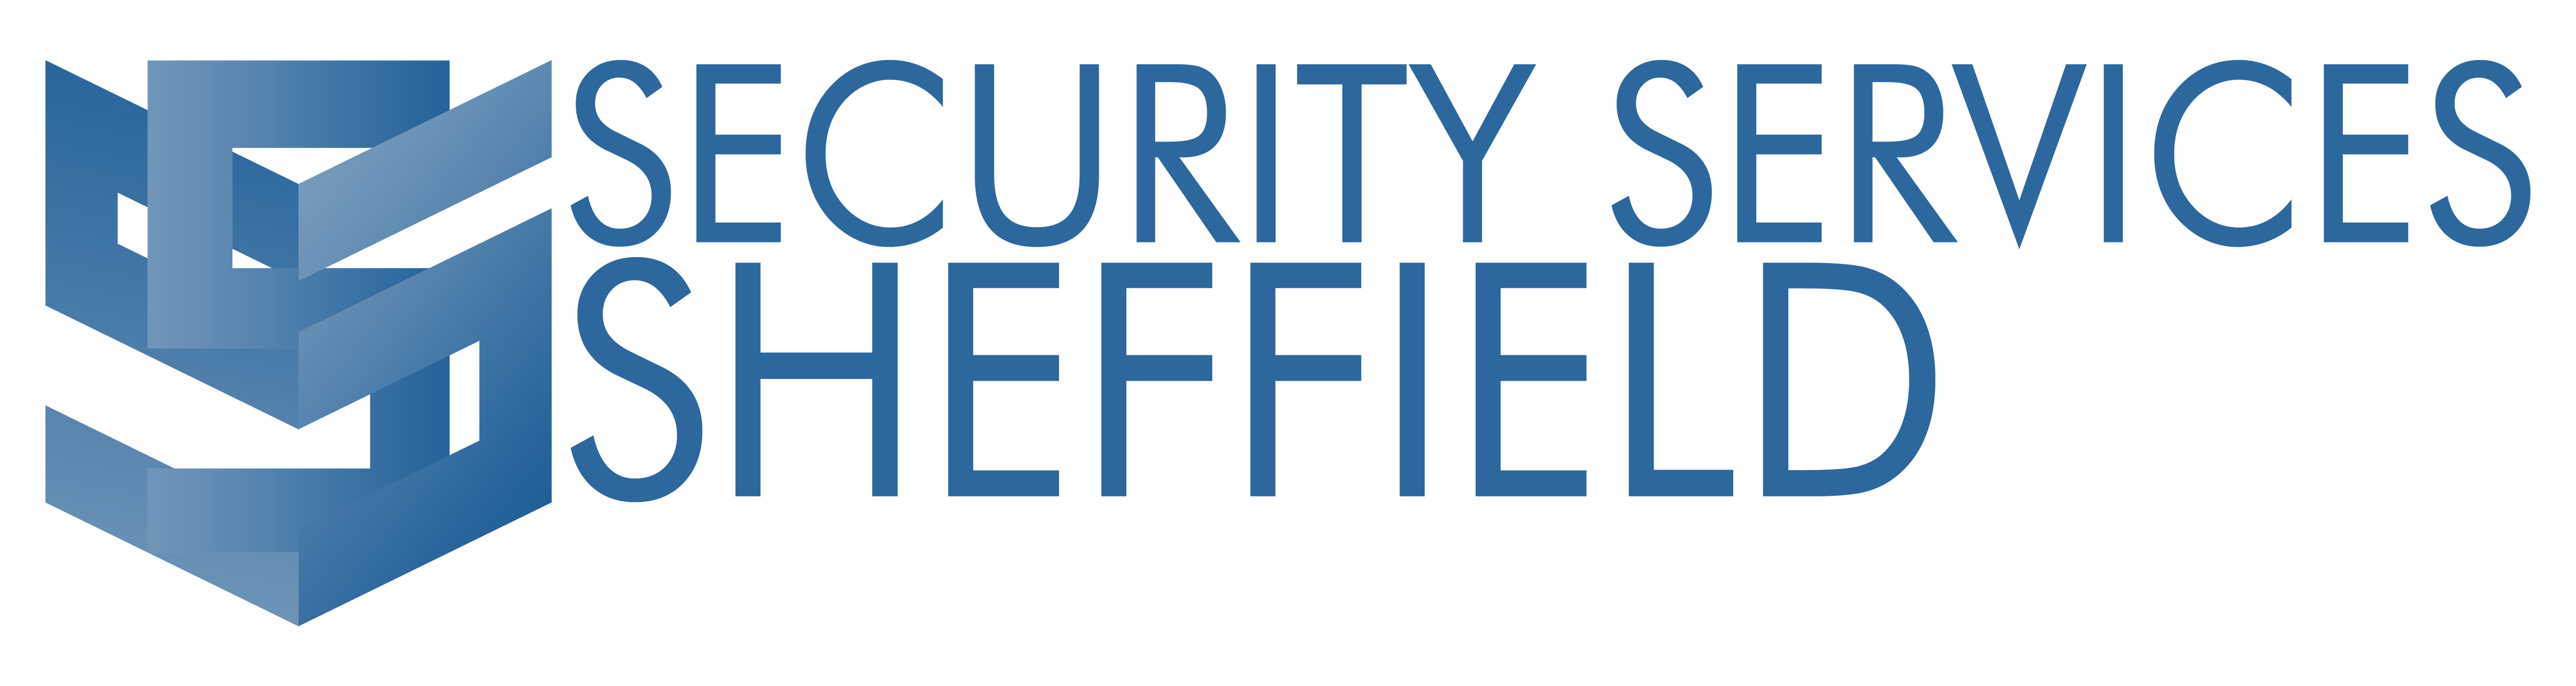 Security services: a selection of news